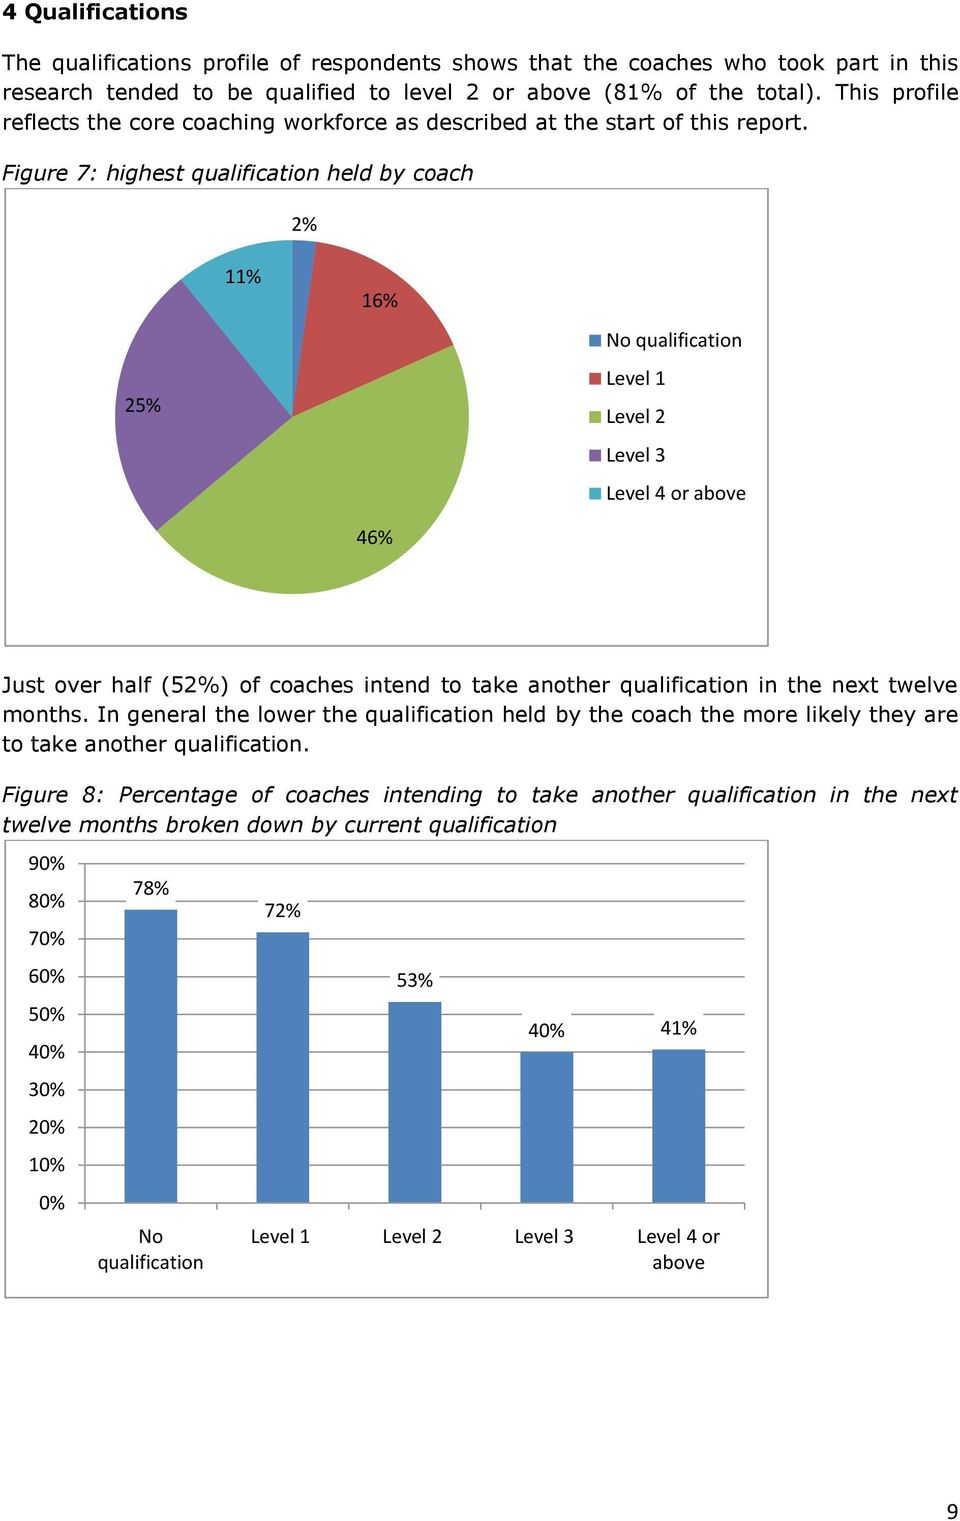 Figure 7: highest qualification held by coach 2% 25% 11% 16% 46% No qualification Level 1 Level 2 Level 3 Level 4 or above Just over half (52%) of coaches intend to take another qualification in the